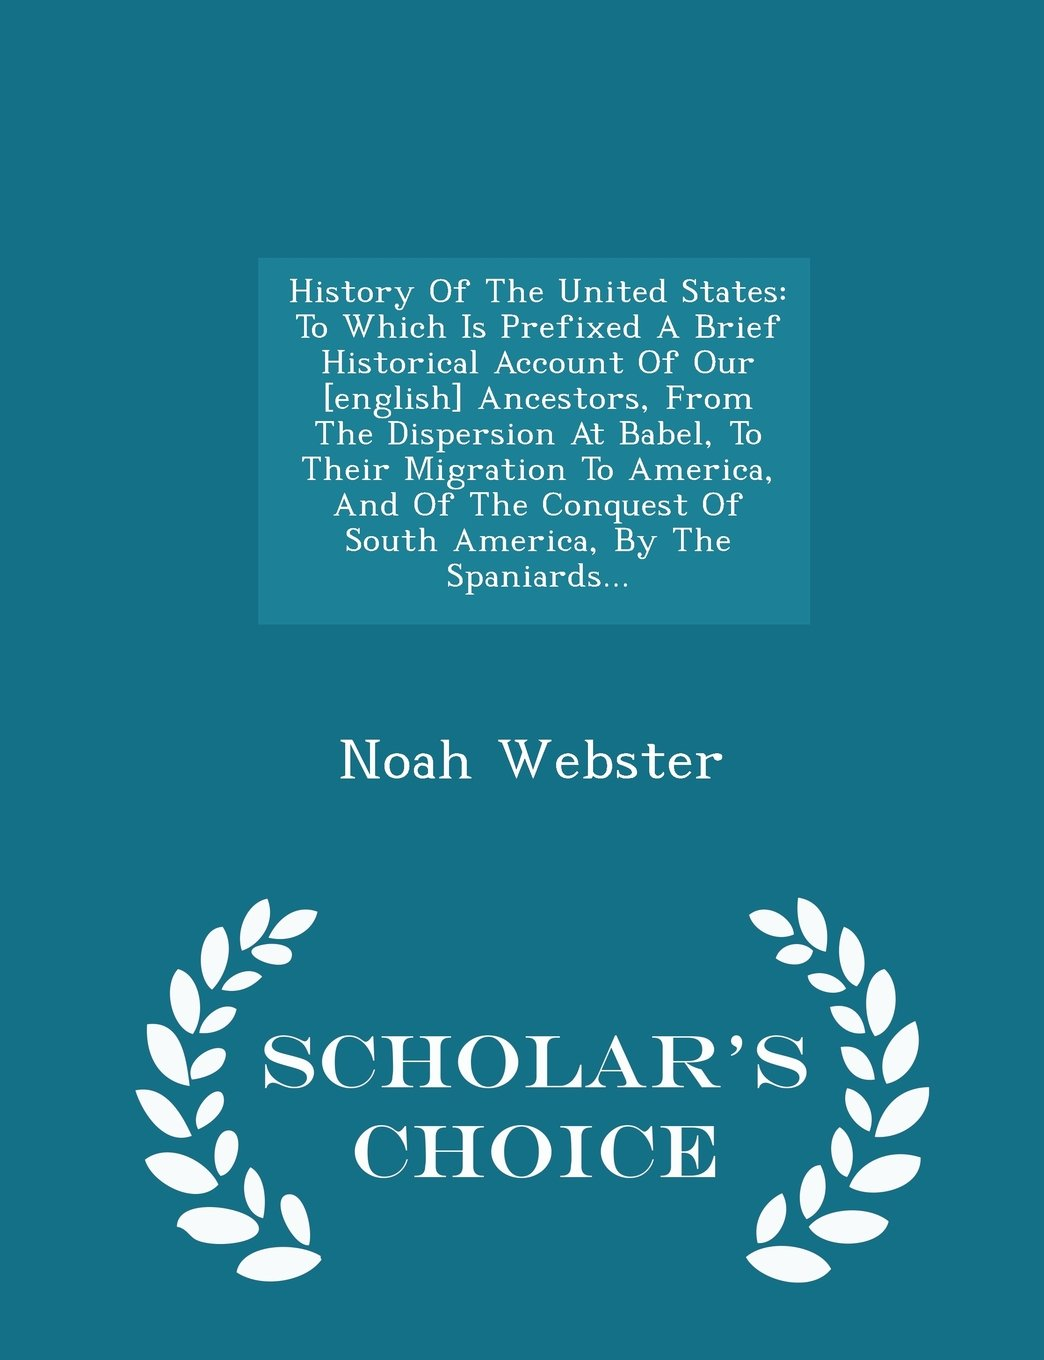 History Of The United States: To Which Is Prefixed A Brief Historical Account Of Our [english] Ancestors, From The Dispersion At Babel, To Their ... The Spaniards... - Scholar's Choice Edition ebook